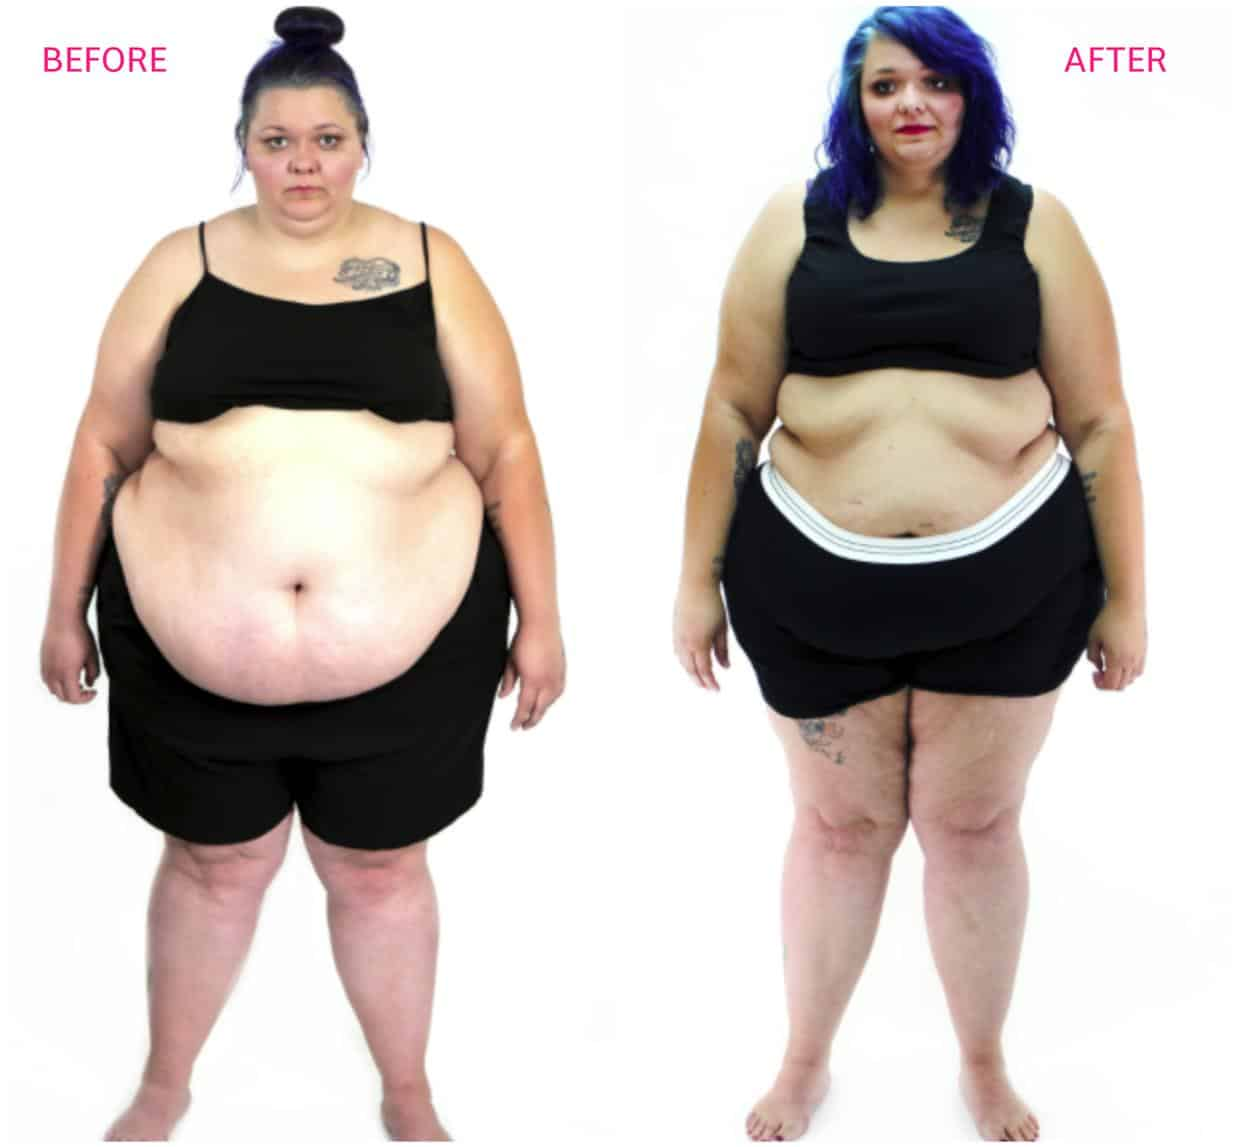 MY 600 LB LIFE MARISSA JESS BEFORE AND AFTER PHOTOS